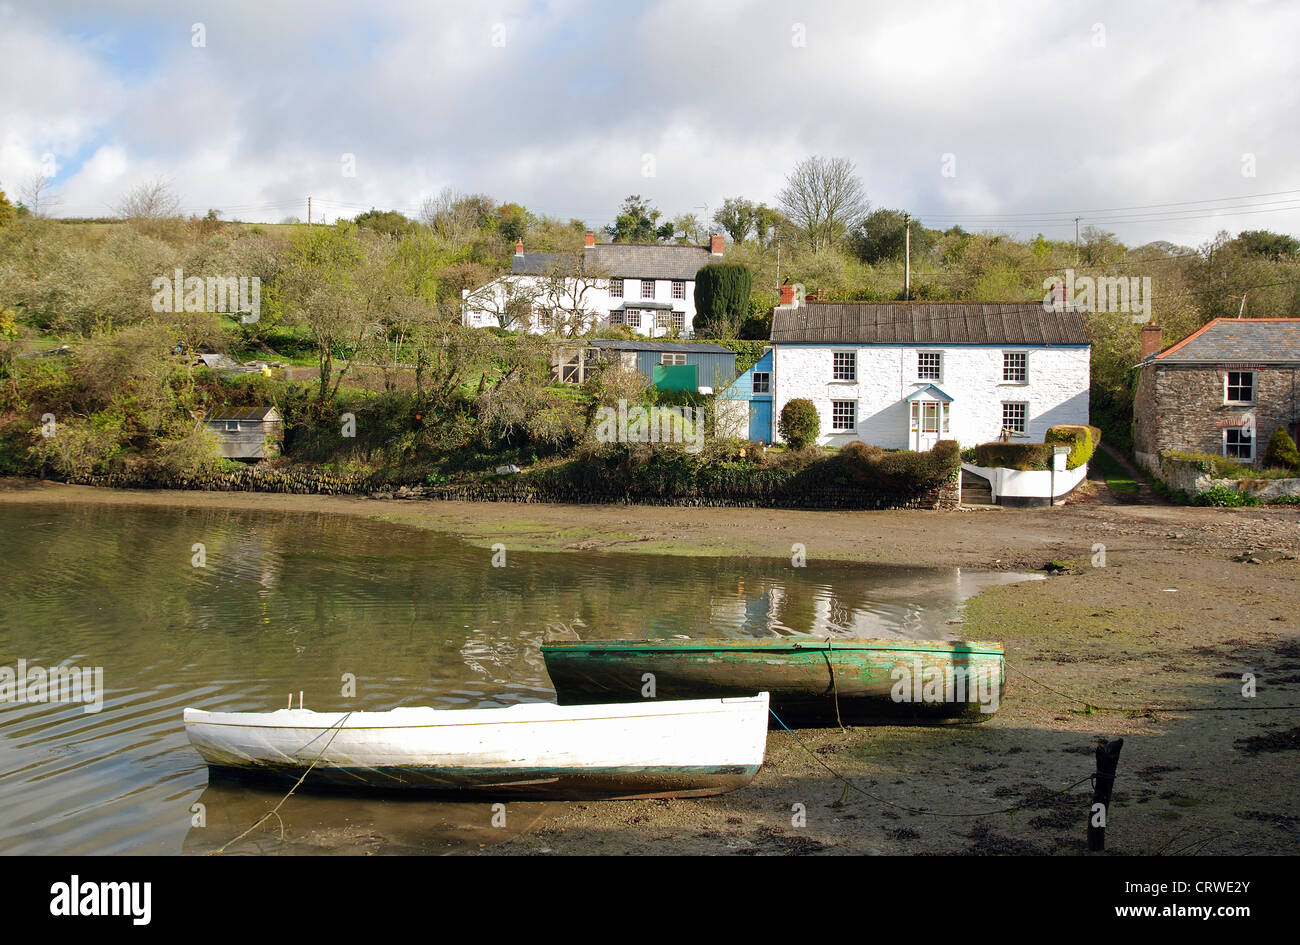 The hamlet of Coombe on a tidal creek off the River Fal near Truro in Cornwall, UK - Stock Image